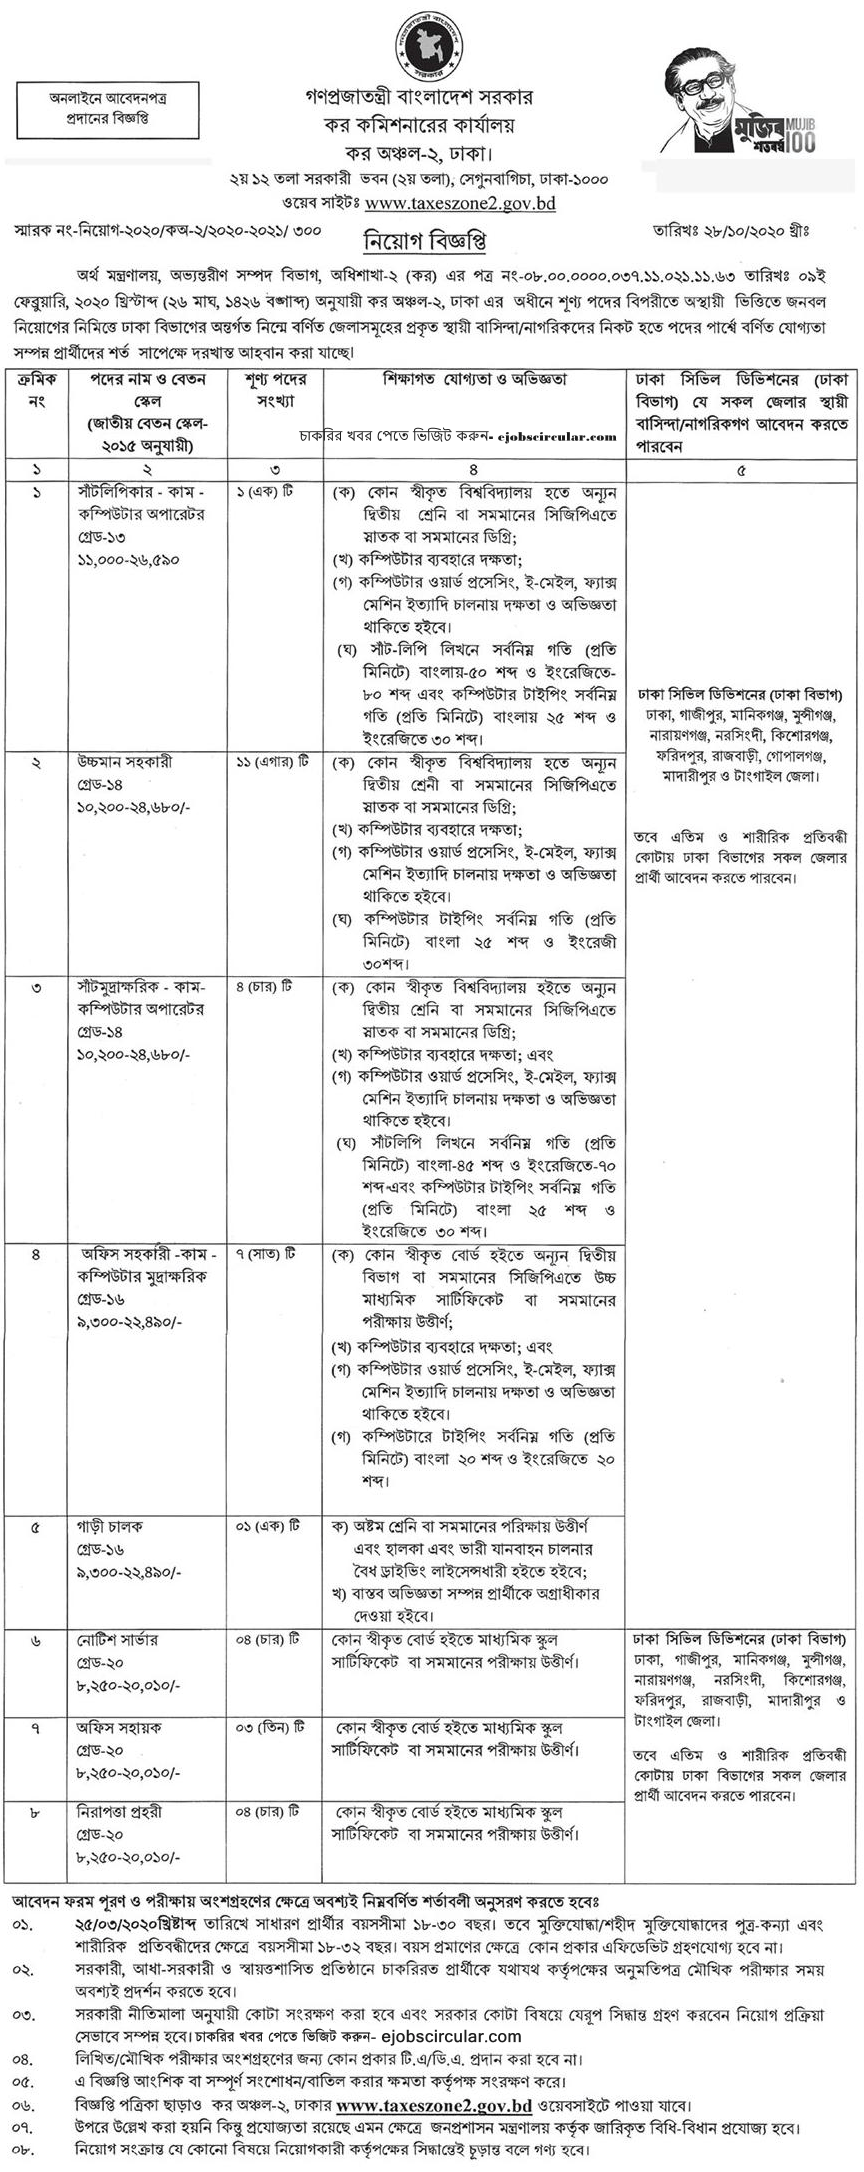 Tax commissioner Office Jobs Circular